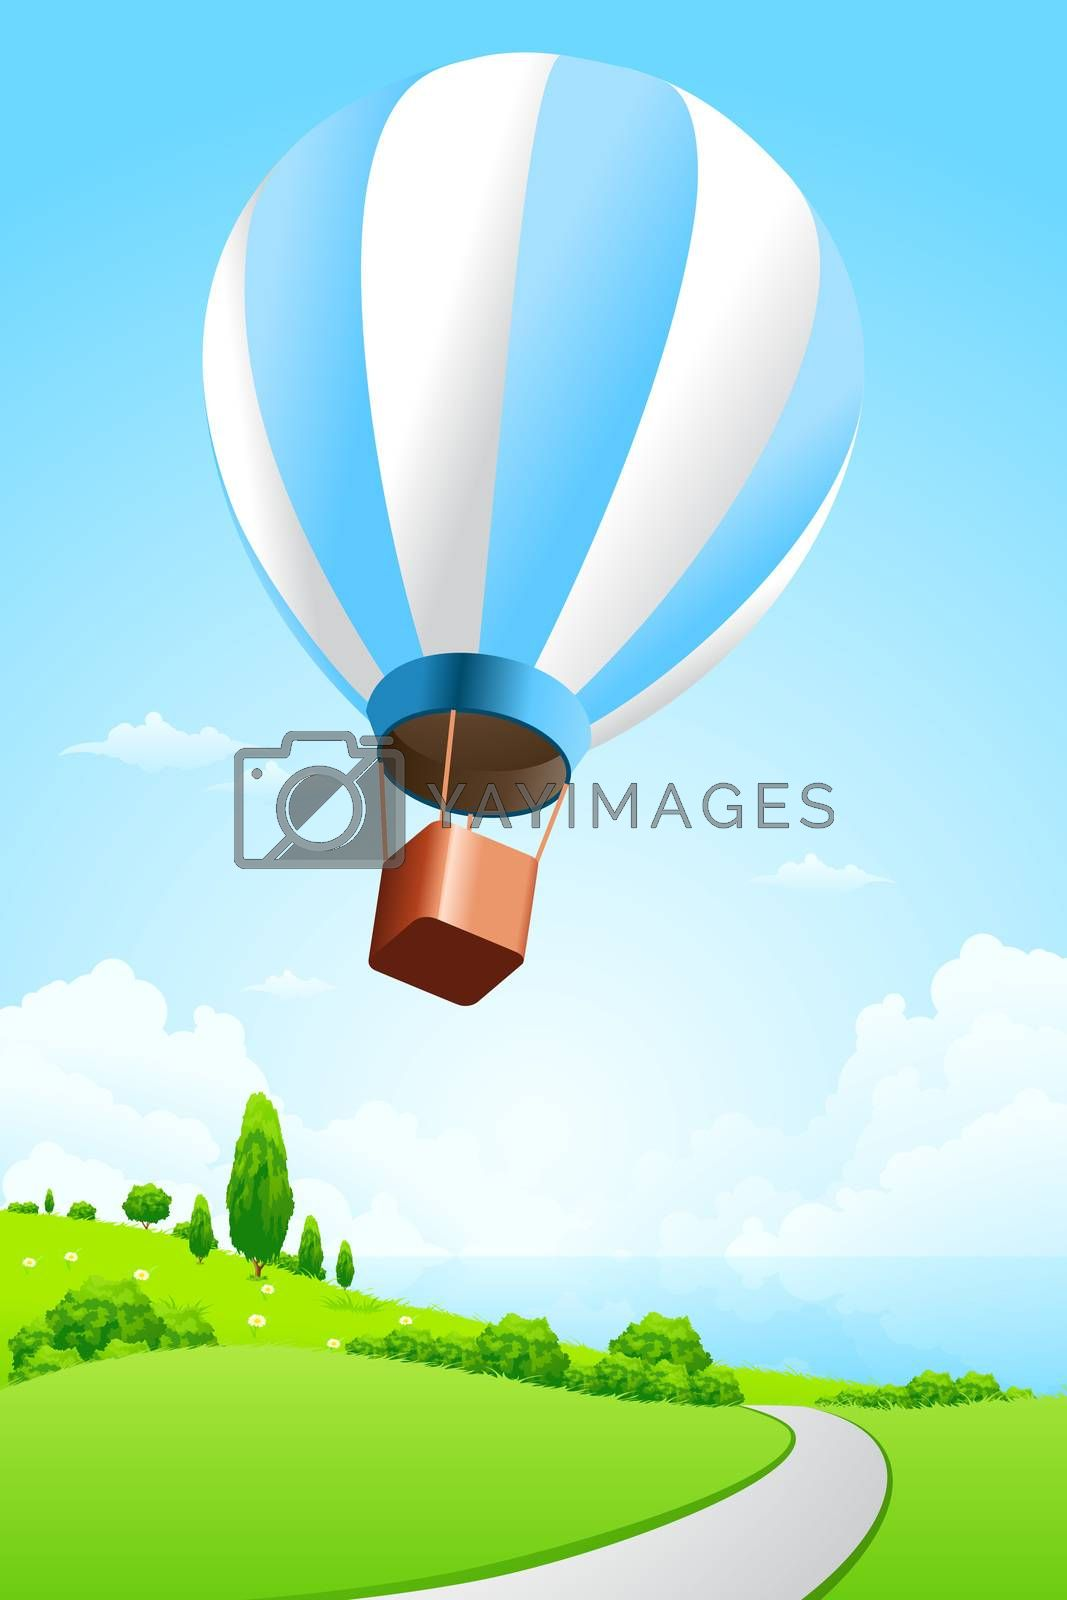 Green Landscape with Hot Air Balloon by WaD